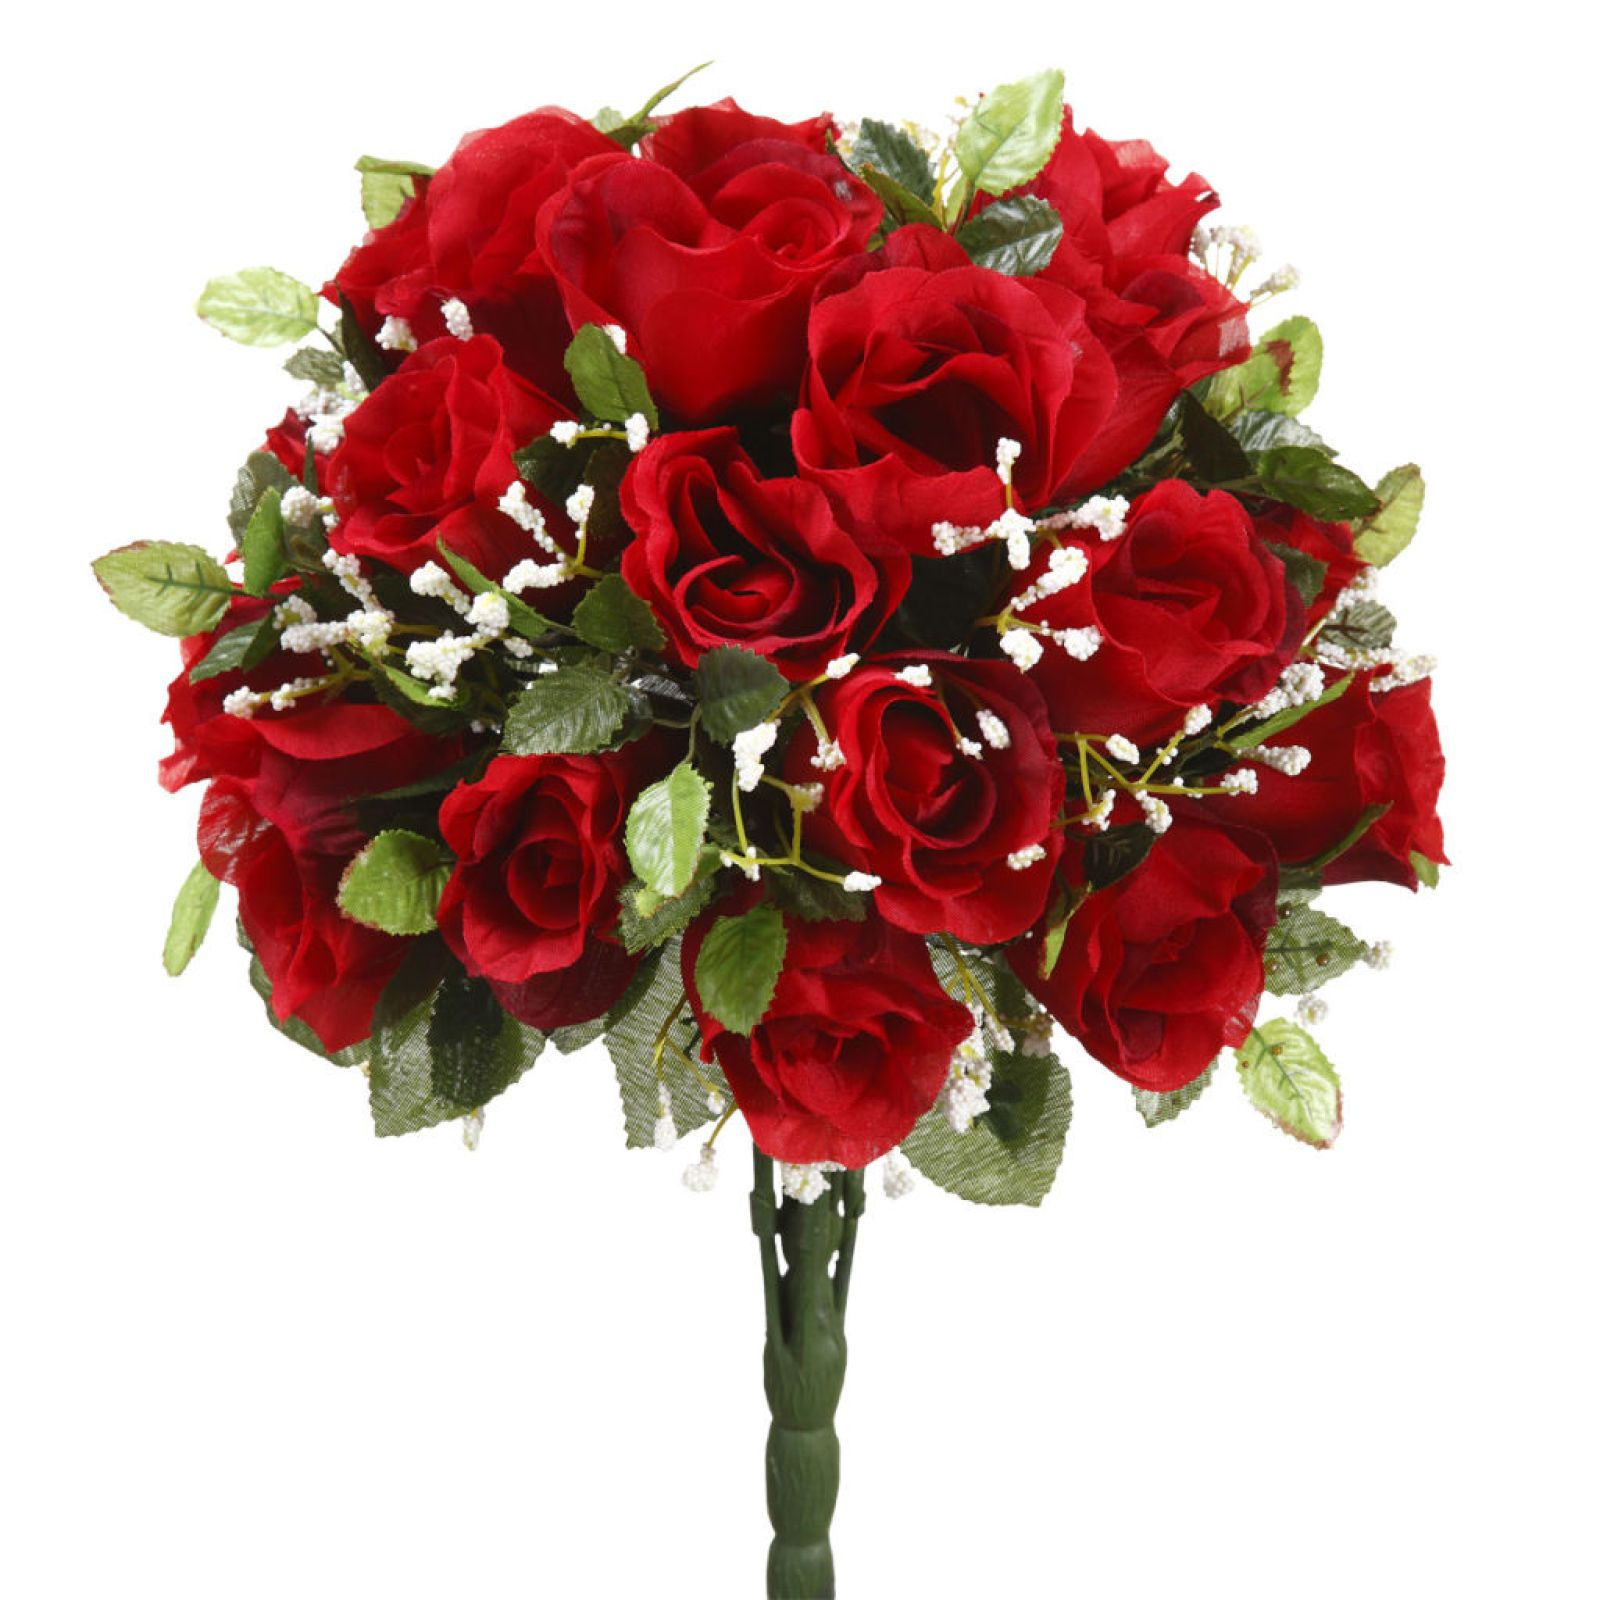 Ashland classic traditions rose bush michaels 1299 wedding this rose bush bunch is ideal for the do it yourself wedding shower or luncheon with a fresh design that makes it easy to create that ideal experience solutioingenieria Gallery